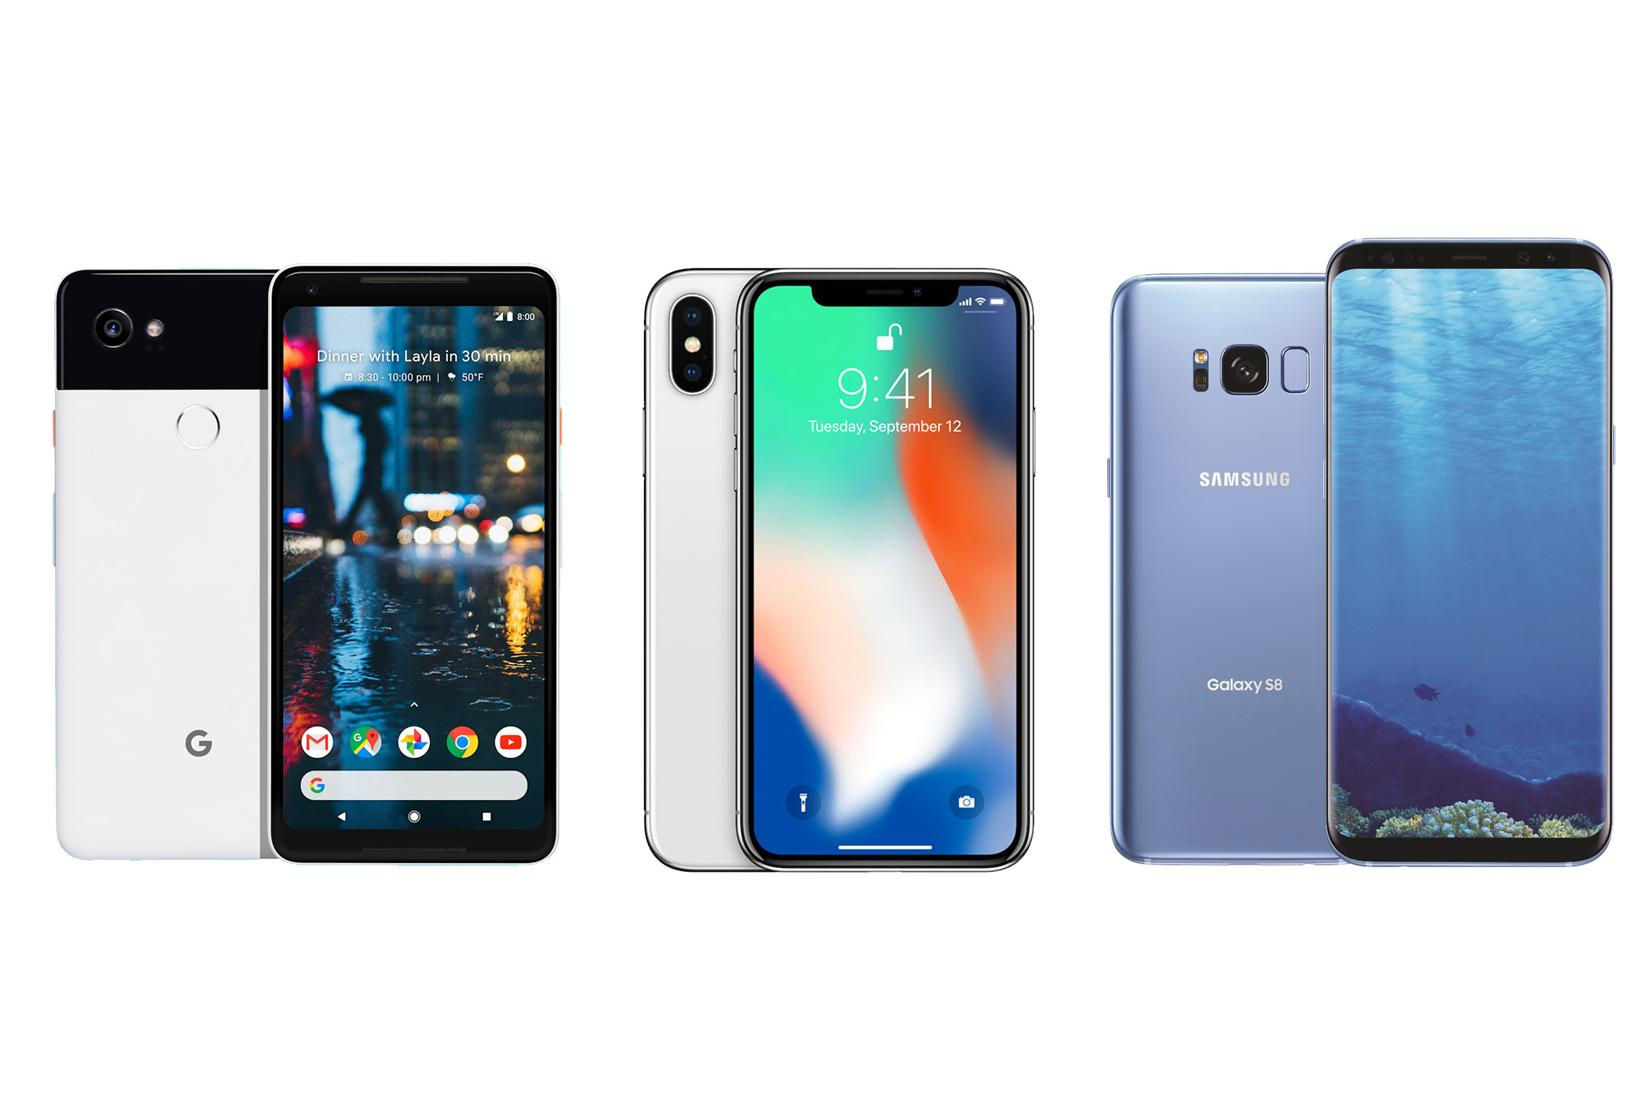 Apple Lg Samsung Iphone X Samsung Galaxy S8 Essential Phone Smartphones Android Lte Axion M Foldable